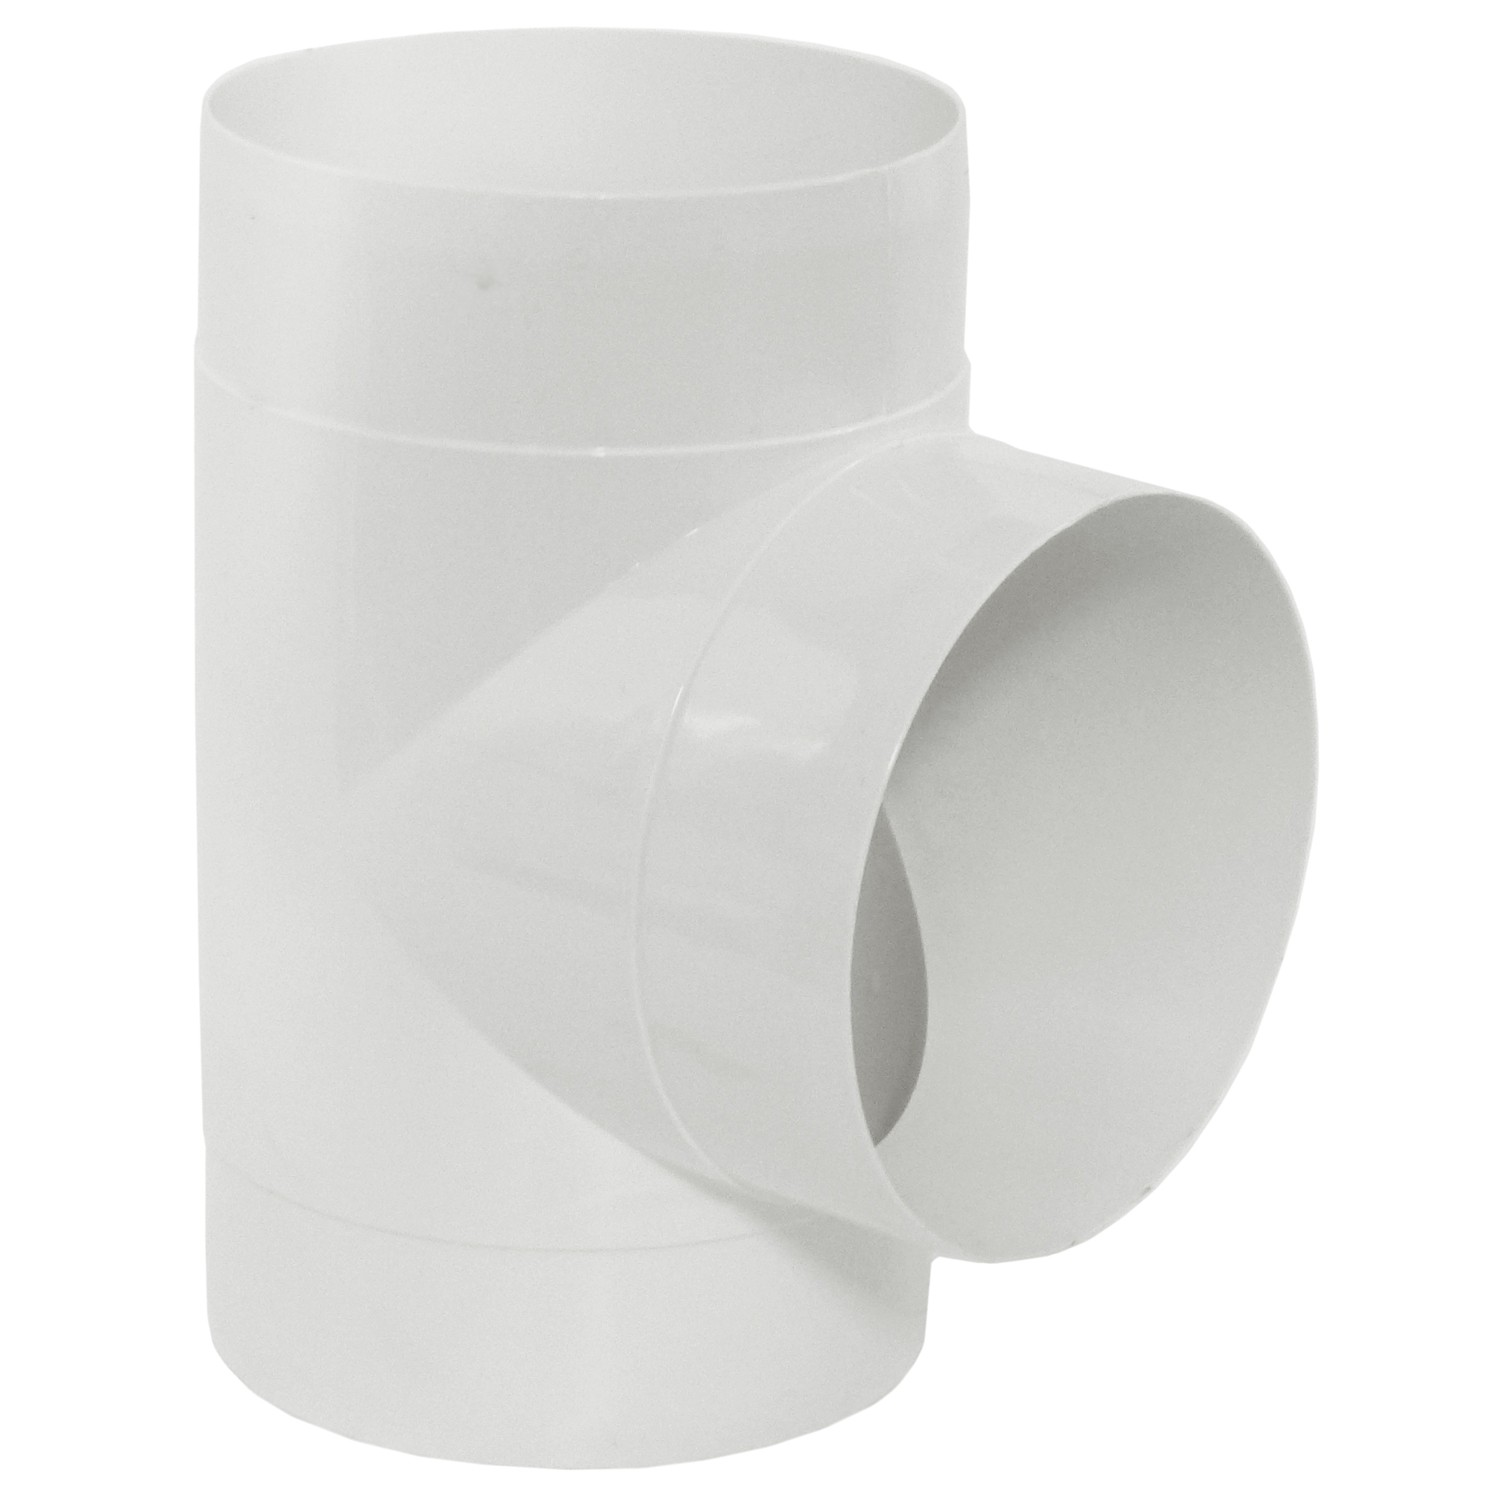 Manrose Round Ducting Pipe T Piece - White, 120mm